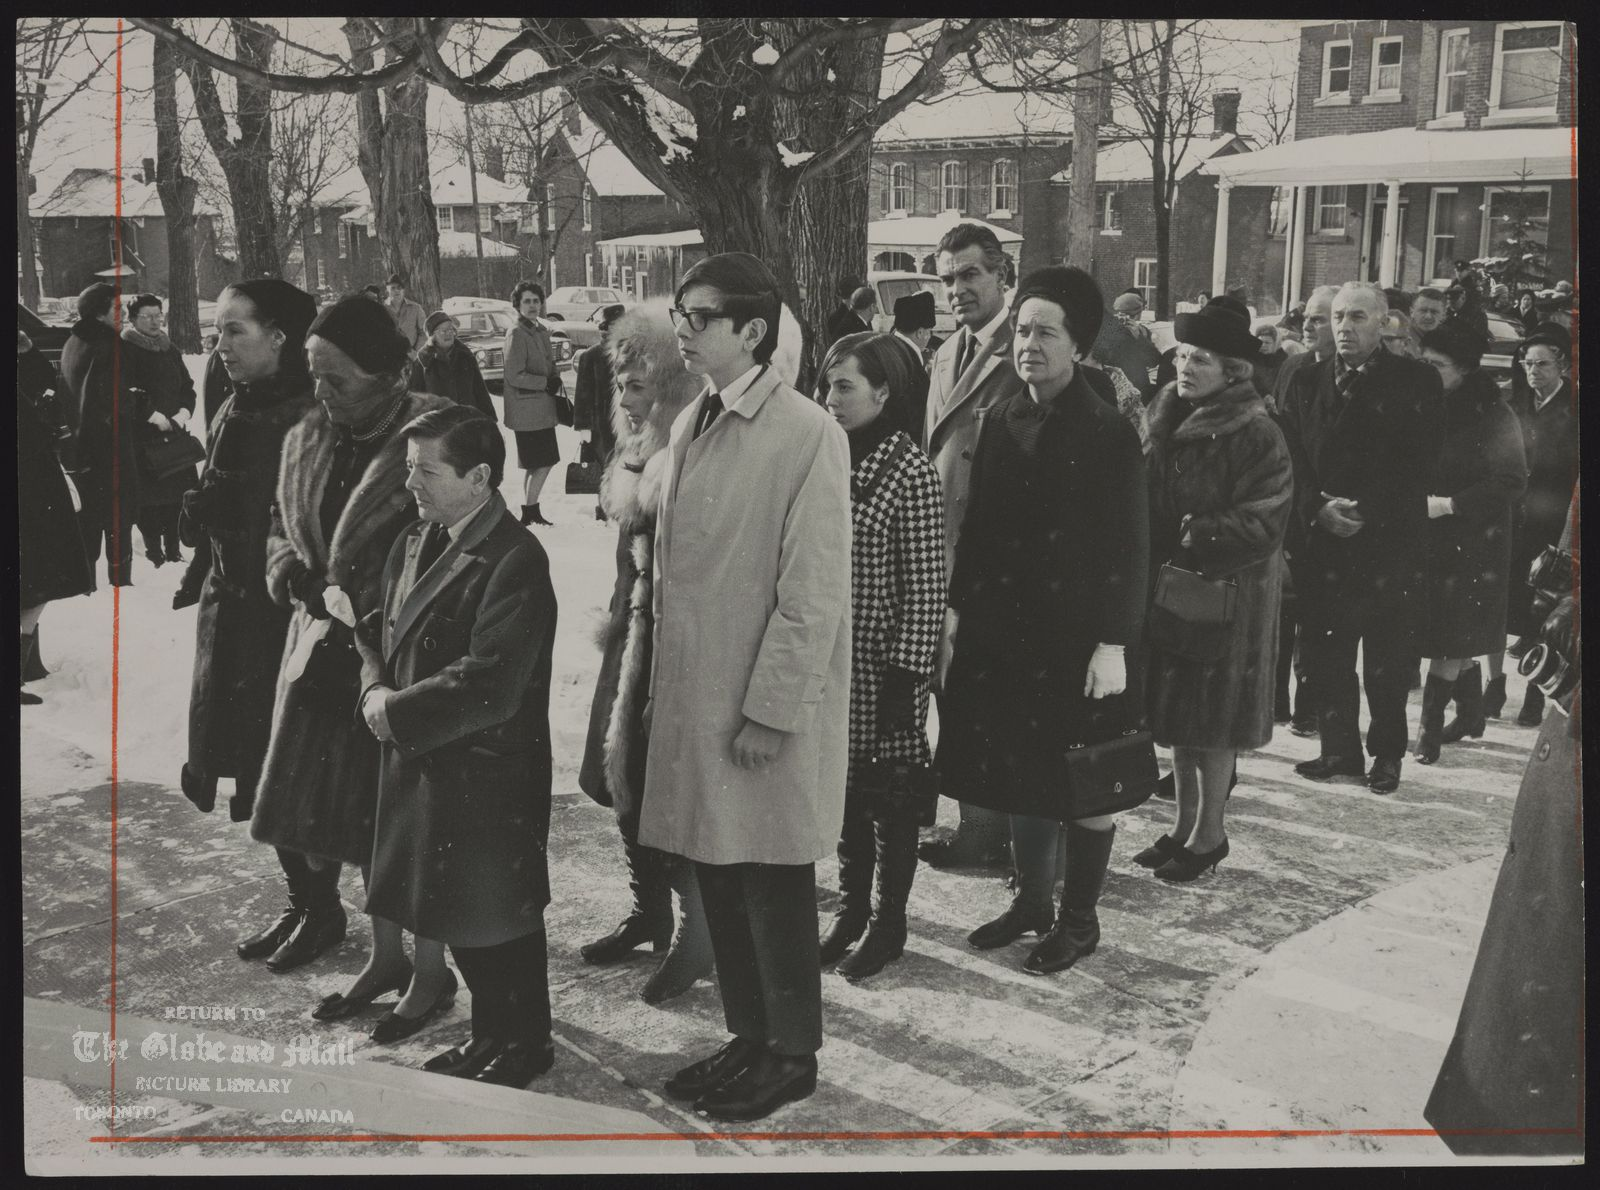 Vincent MASSEY Leading the file at Massey funeral are Mr. and Mrs. Hart Massey, flanking Mrs. Leigh Goosage. Behind Mr. Massey are his son Jonathan and the daughters of Mr. Lionel Massey. Rev. G.E. Moffat conduct the service. The former Governor-General died December 30, 1967.